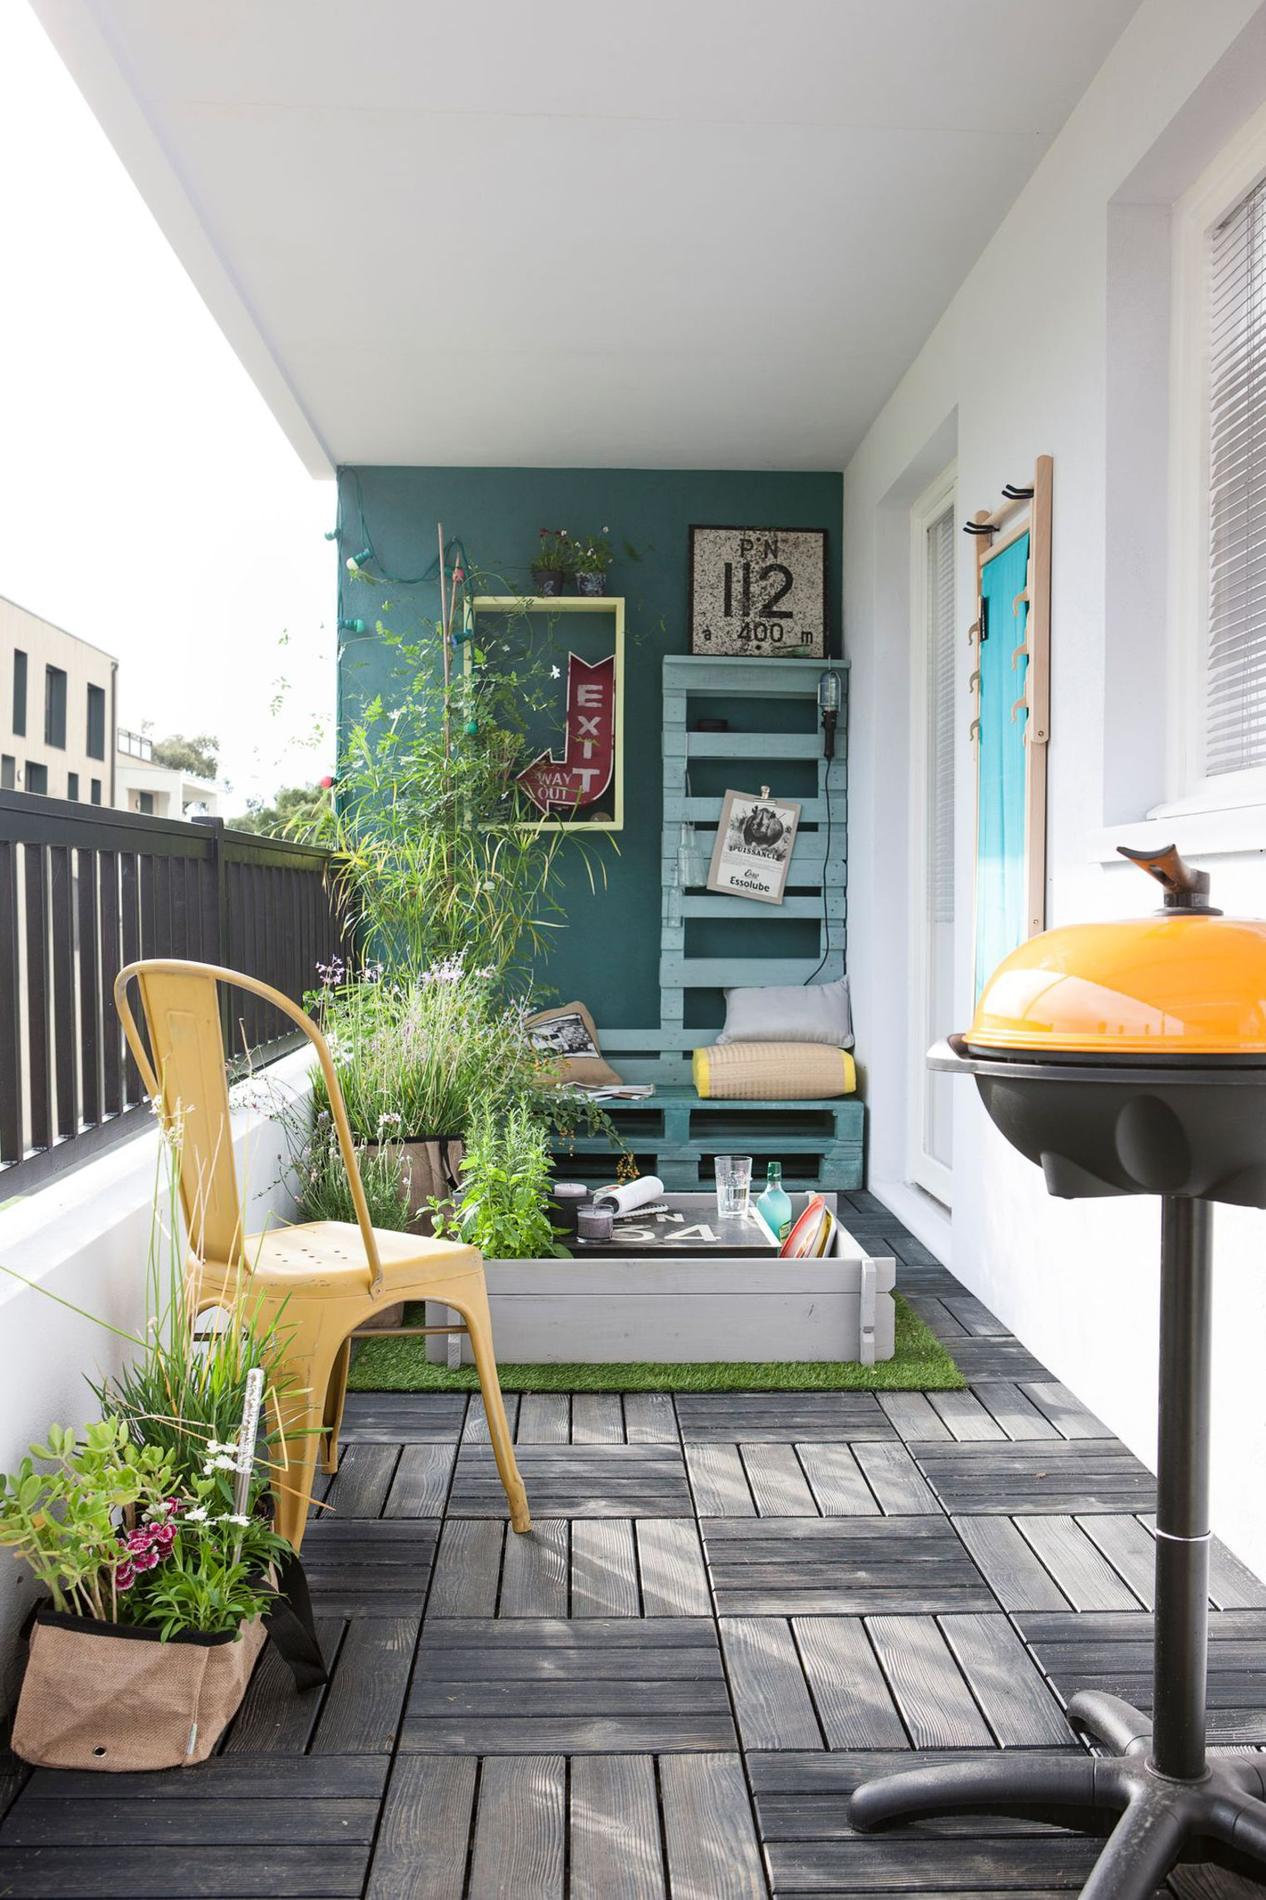 Comment donner du style vos balcons et terrasses for Design balcon exterieur